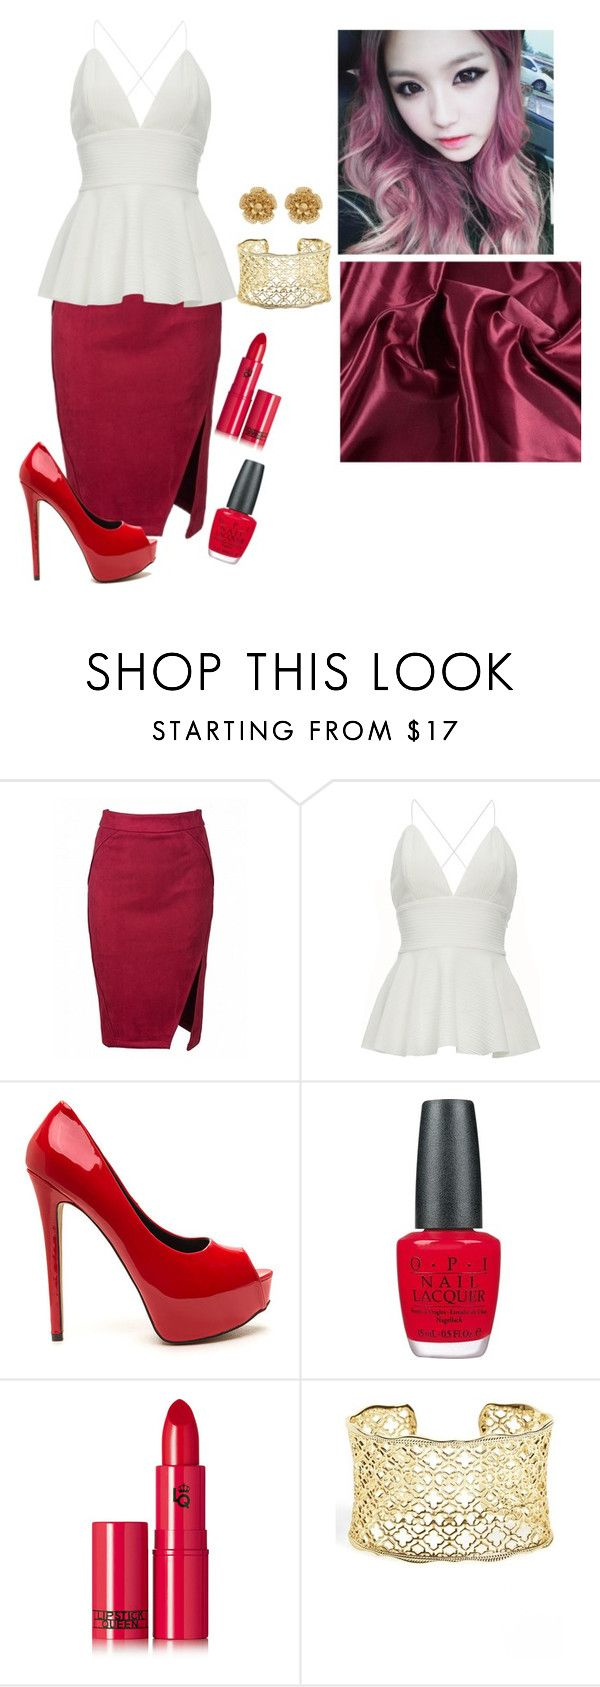 """Purrfecta Cover Lee Hani ""Fire"" ~ Lauren"" by purrfectas ❤ liked on Polyvore featuring OPI, Lipstick Queen, Kendra Scott and Miriam Haskell"